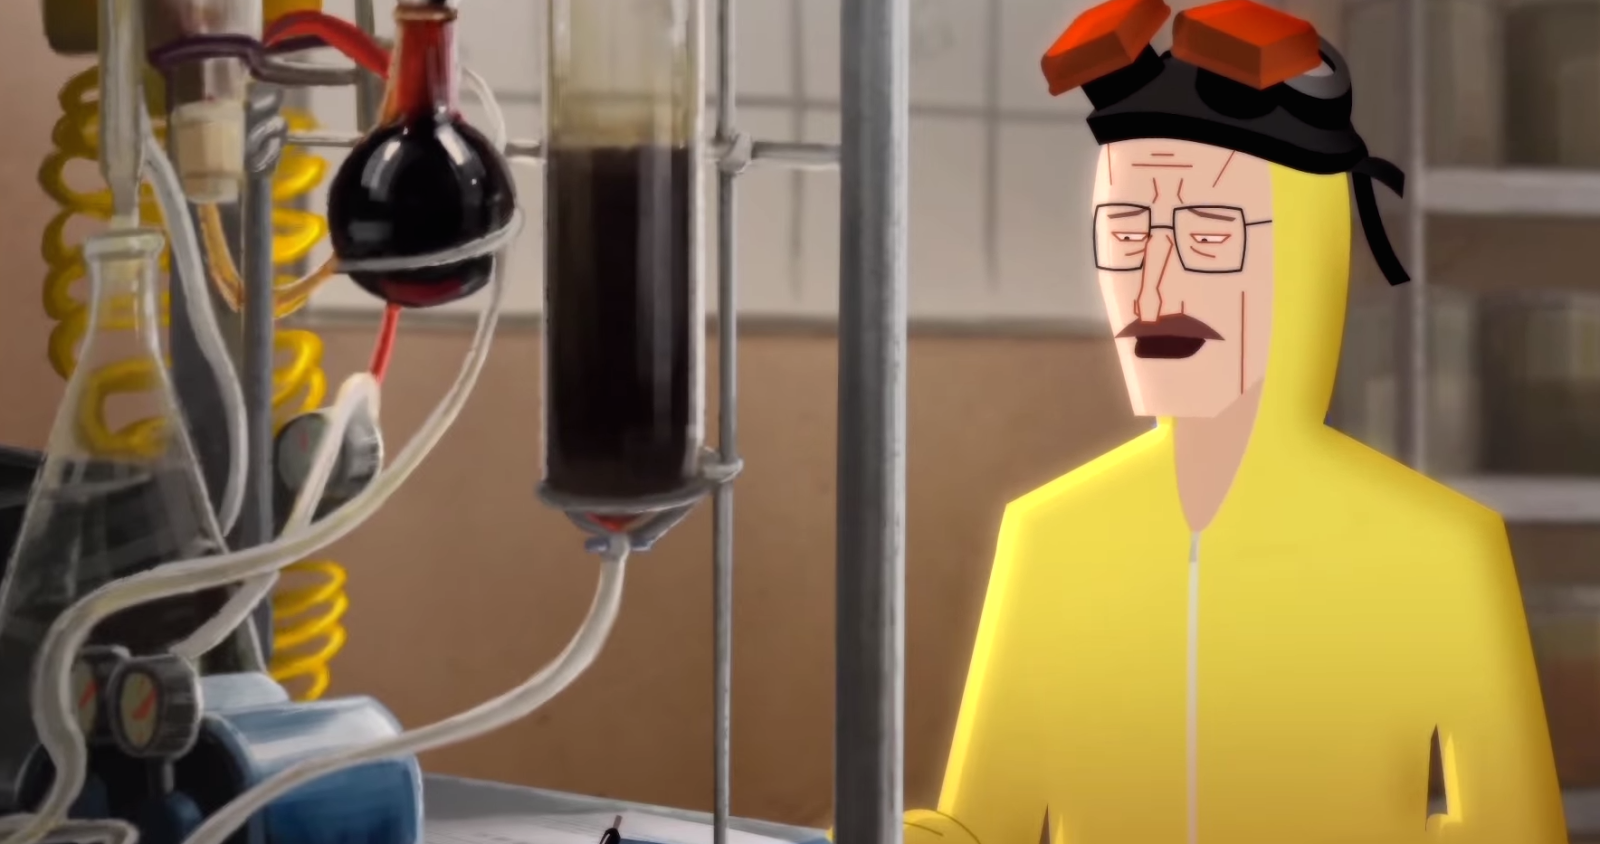 Do You Want to Build a Meth Lab? - Frozen x Breaking Bad Parodie